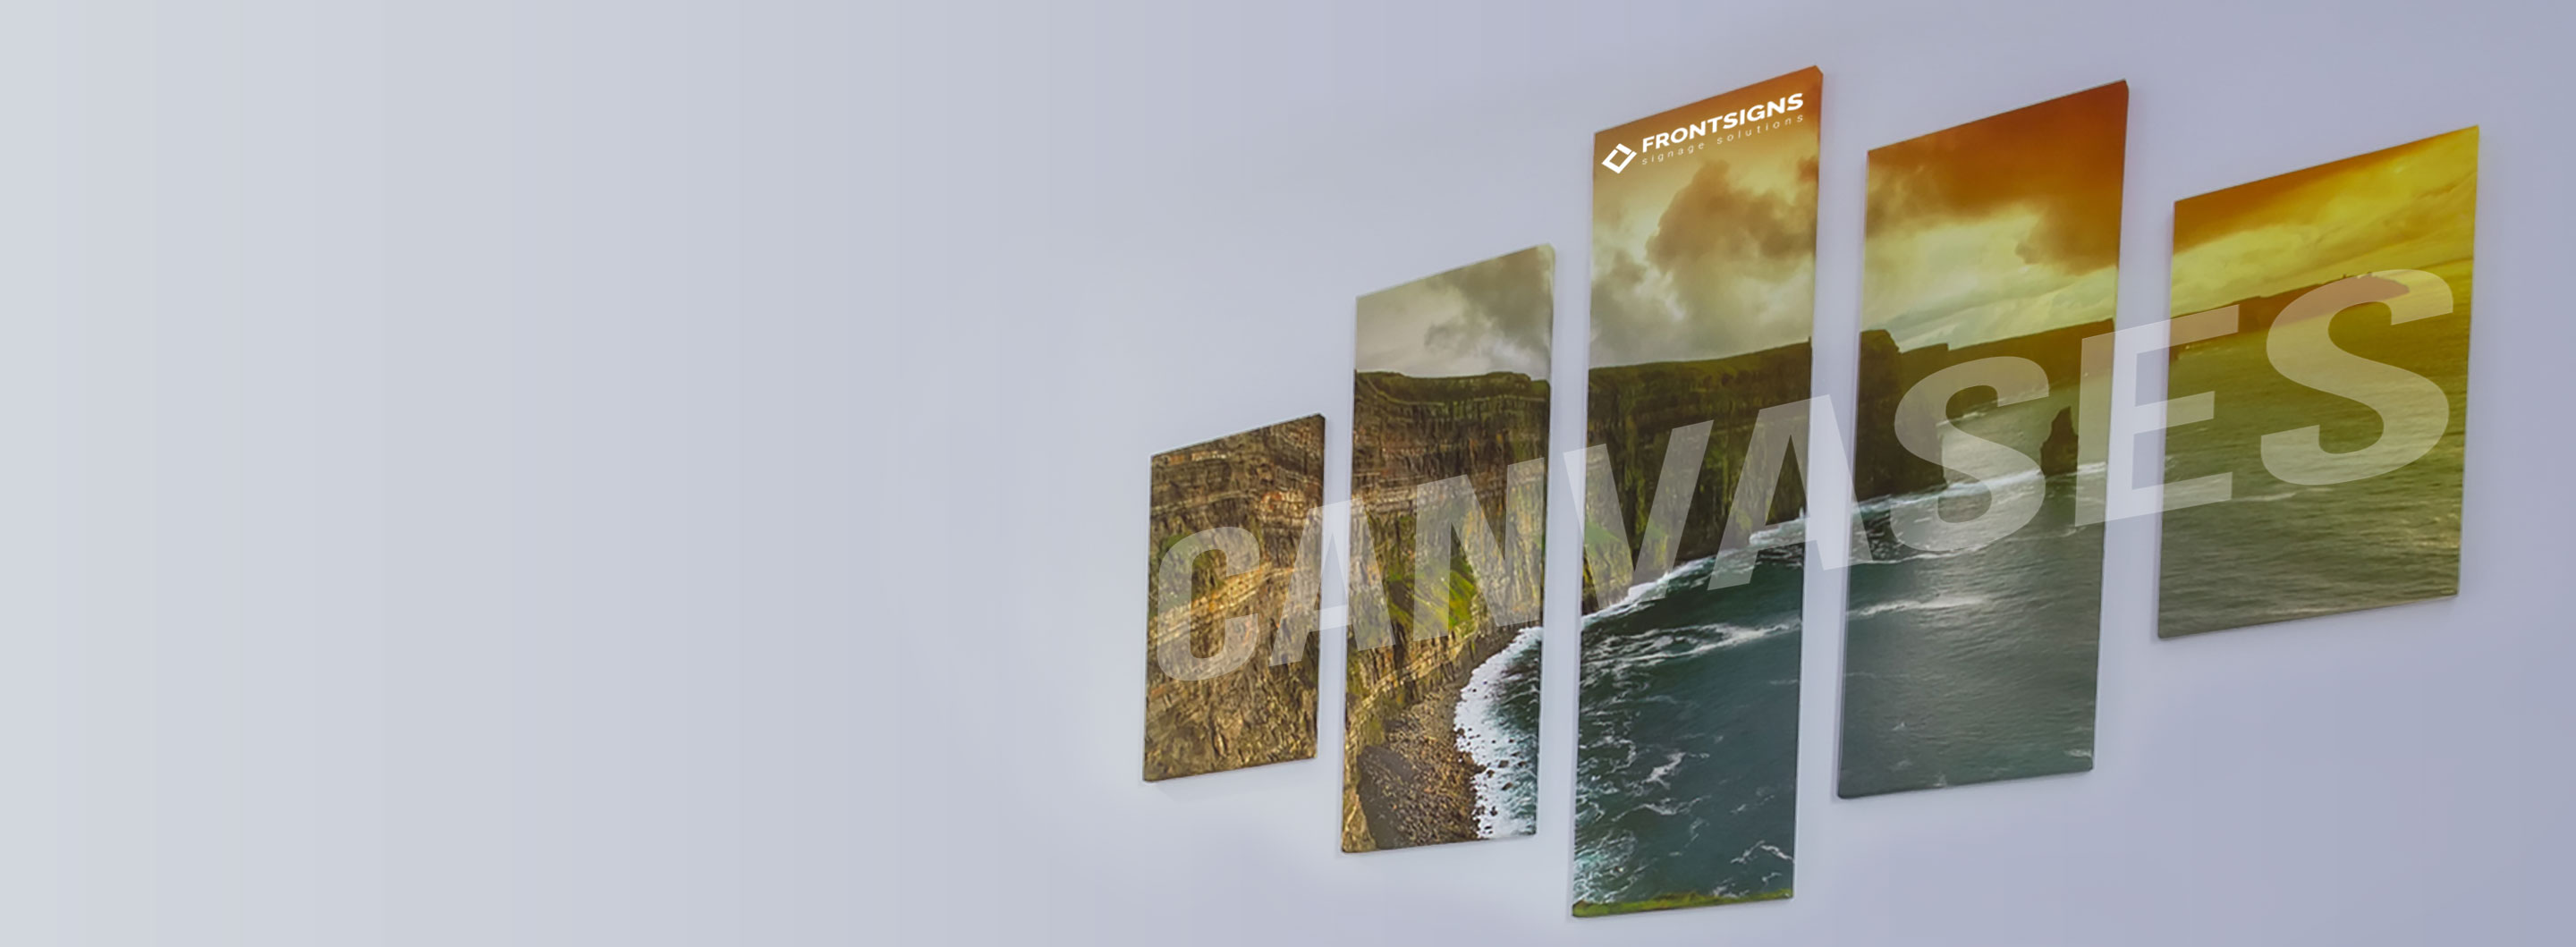 Canvases for your home or office interior decoration